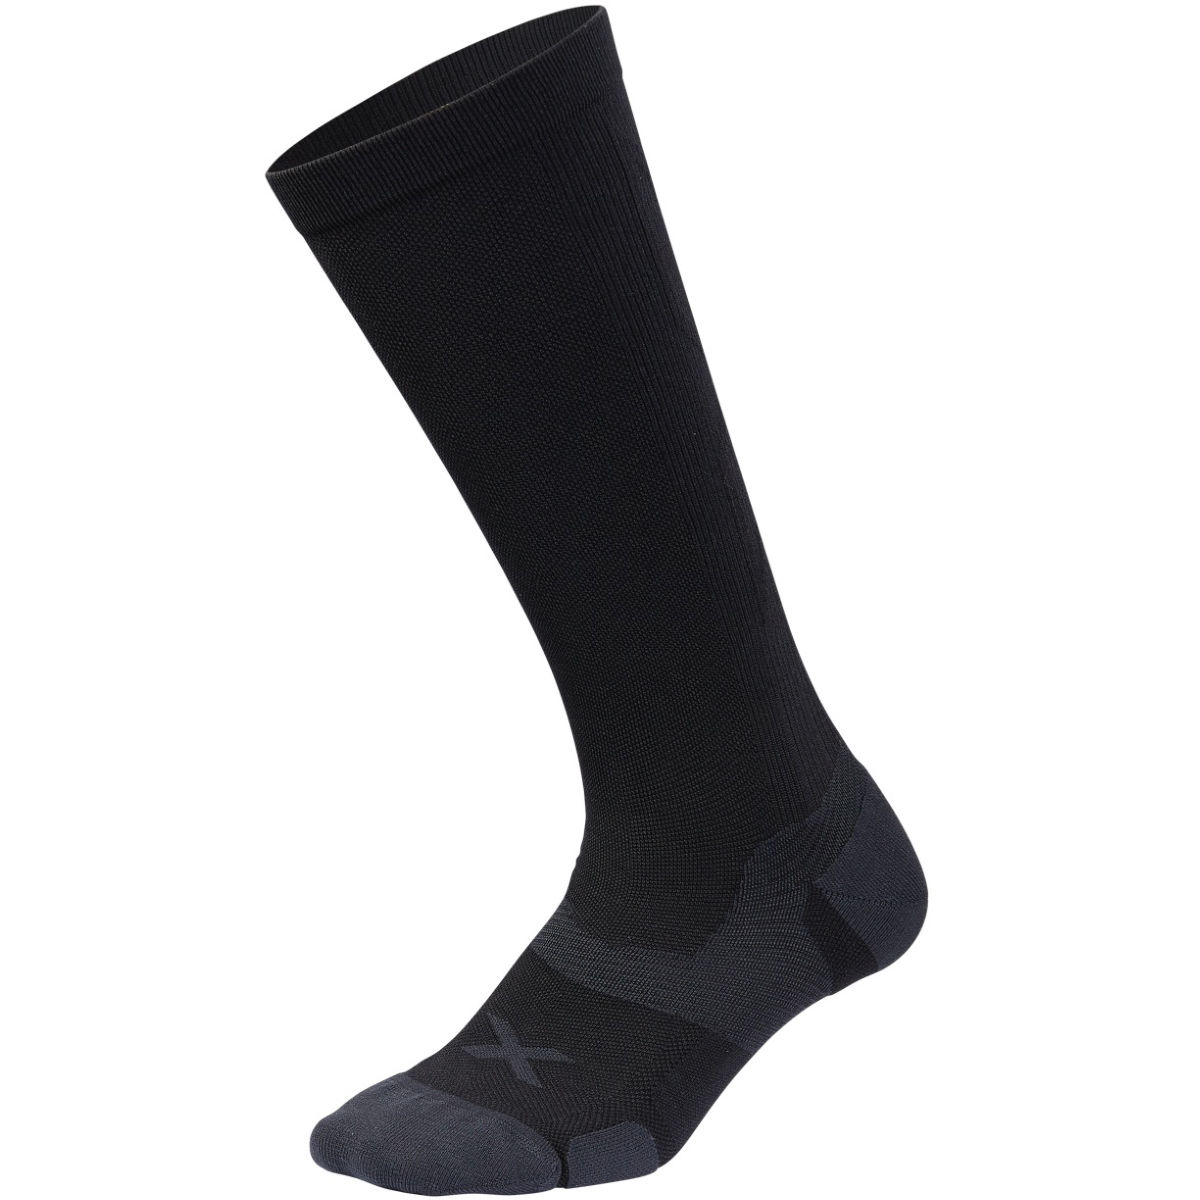 2XU Vectr Cushion Full Length Compression Socks - Calcetines